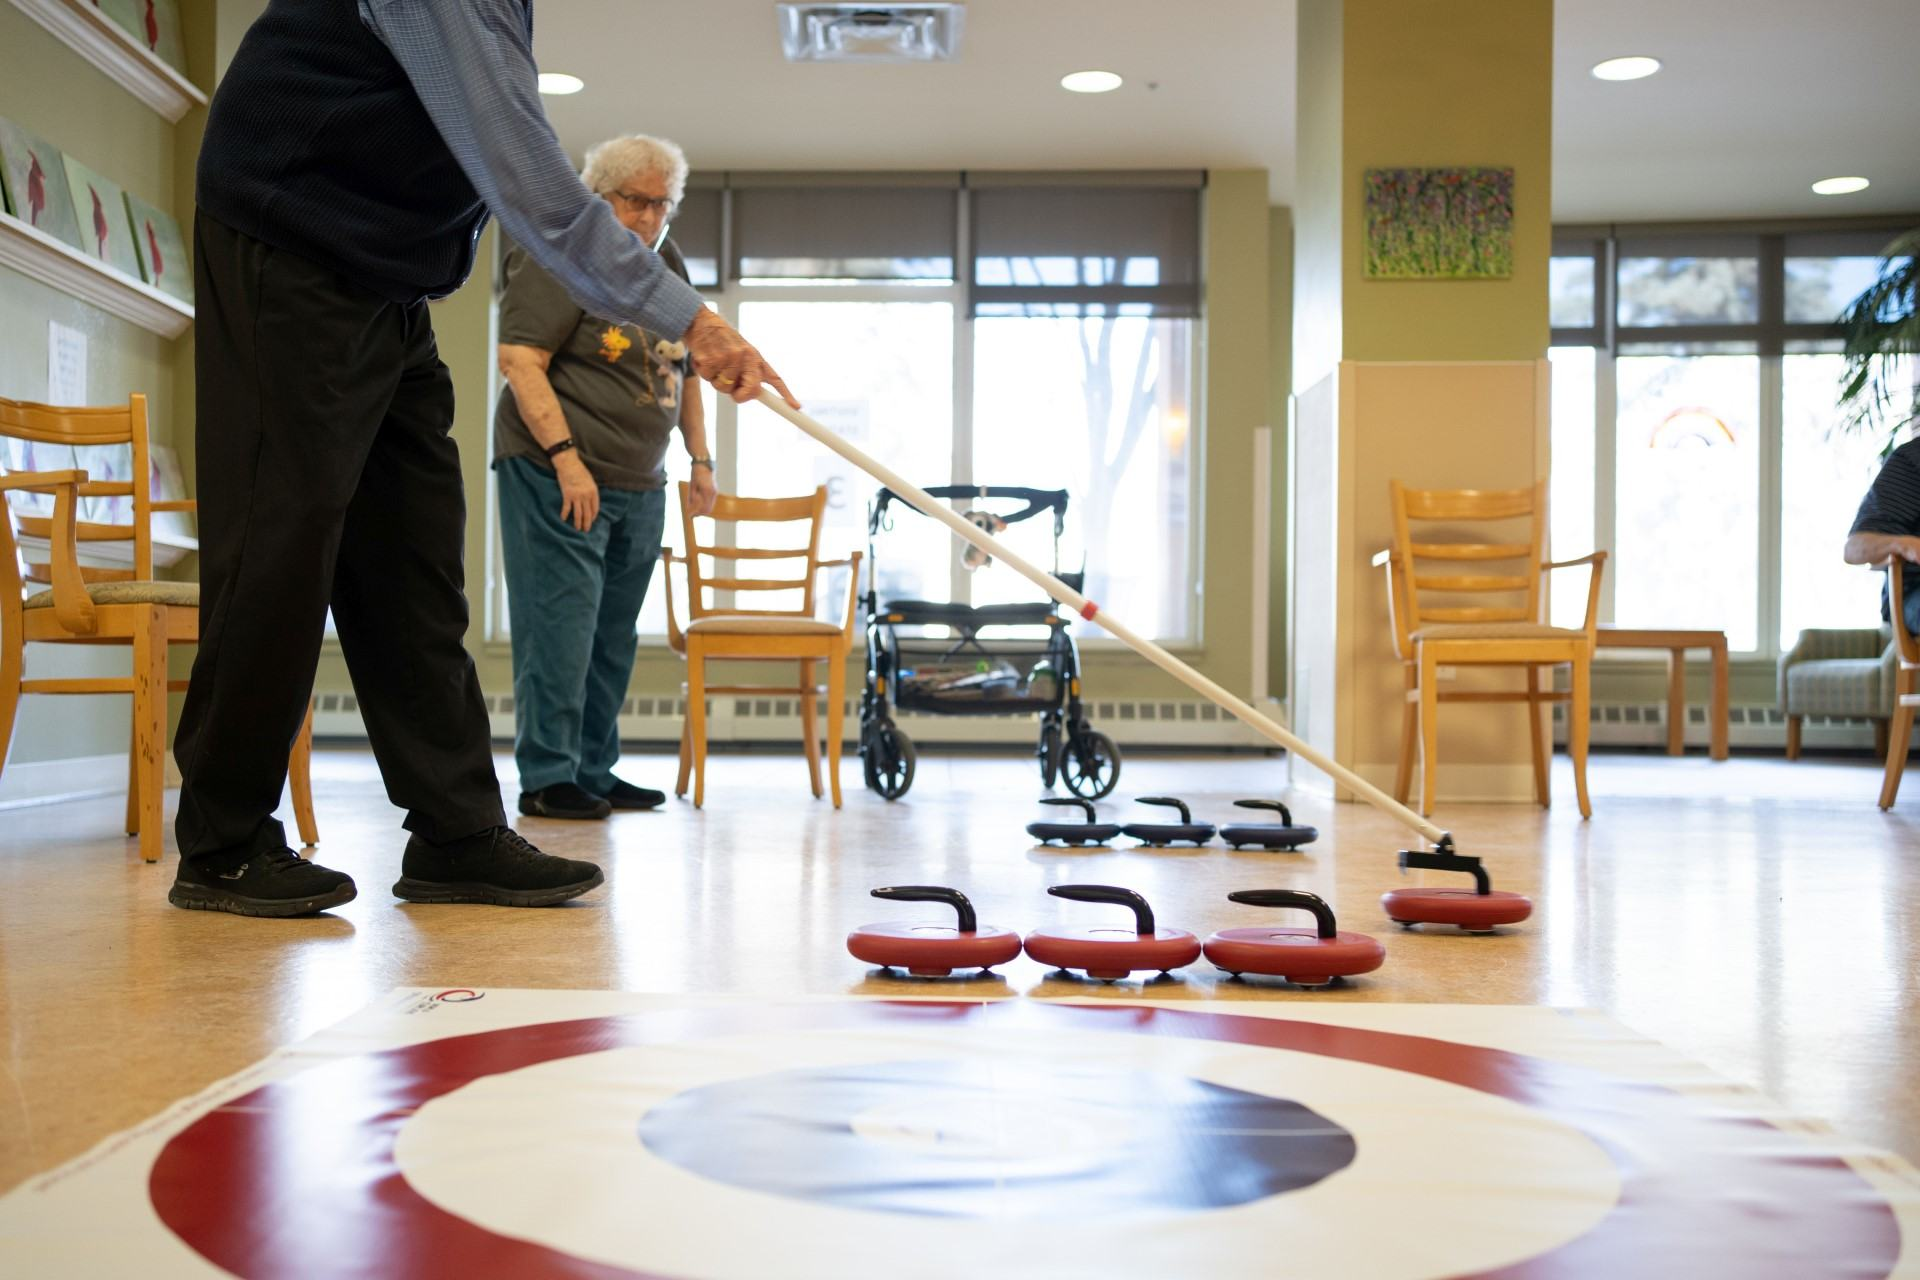 Residents playing a game of curling and living an active life